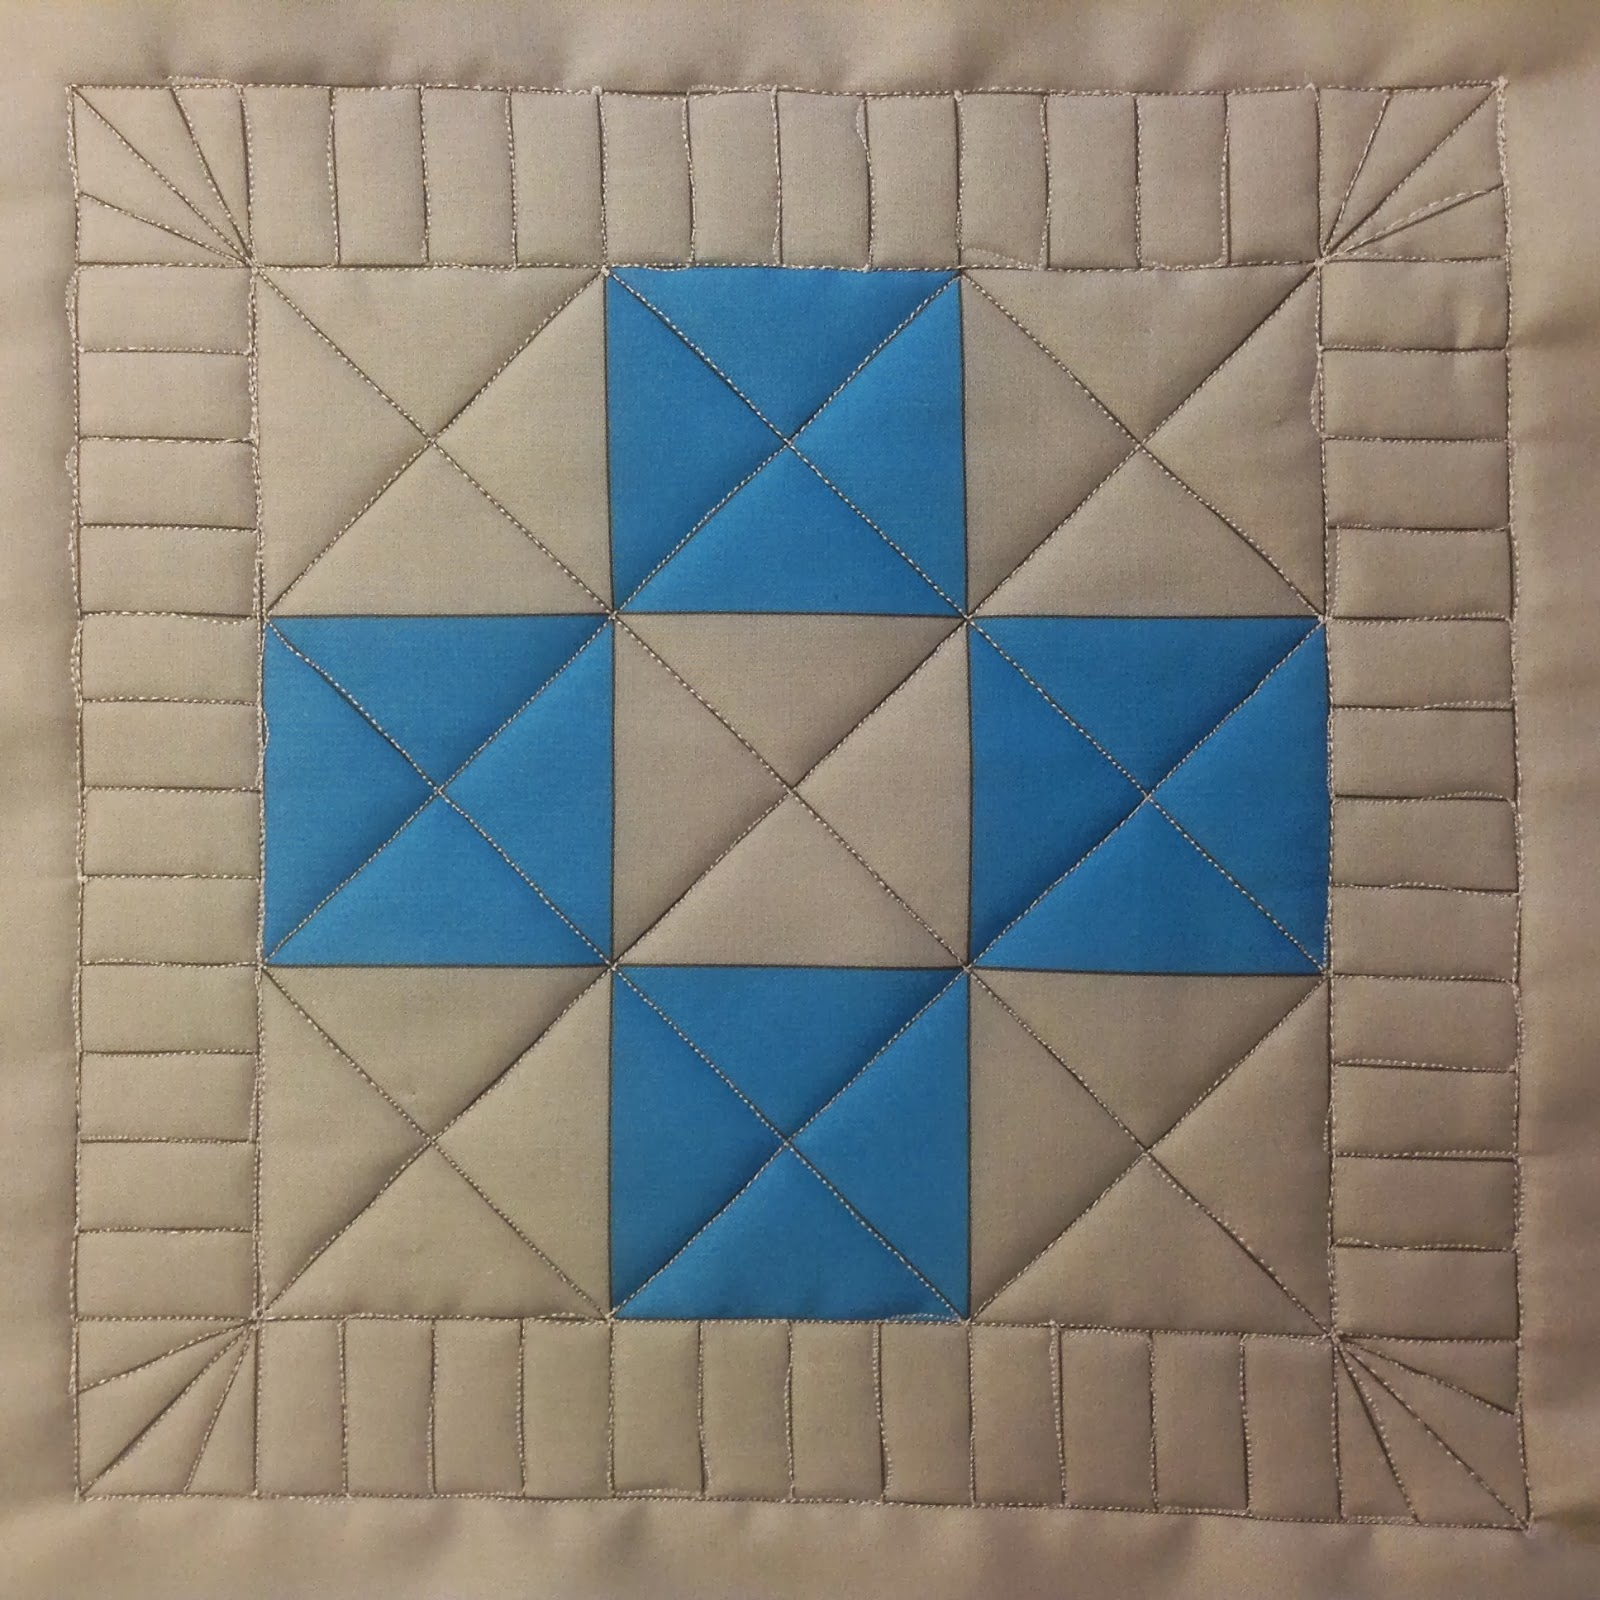 Free Motion Quilting Patterns For Blocks : The Free Motion Quilting Project: Josh s Straight Lines in a 9 Patch Block